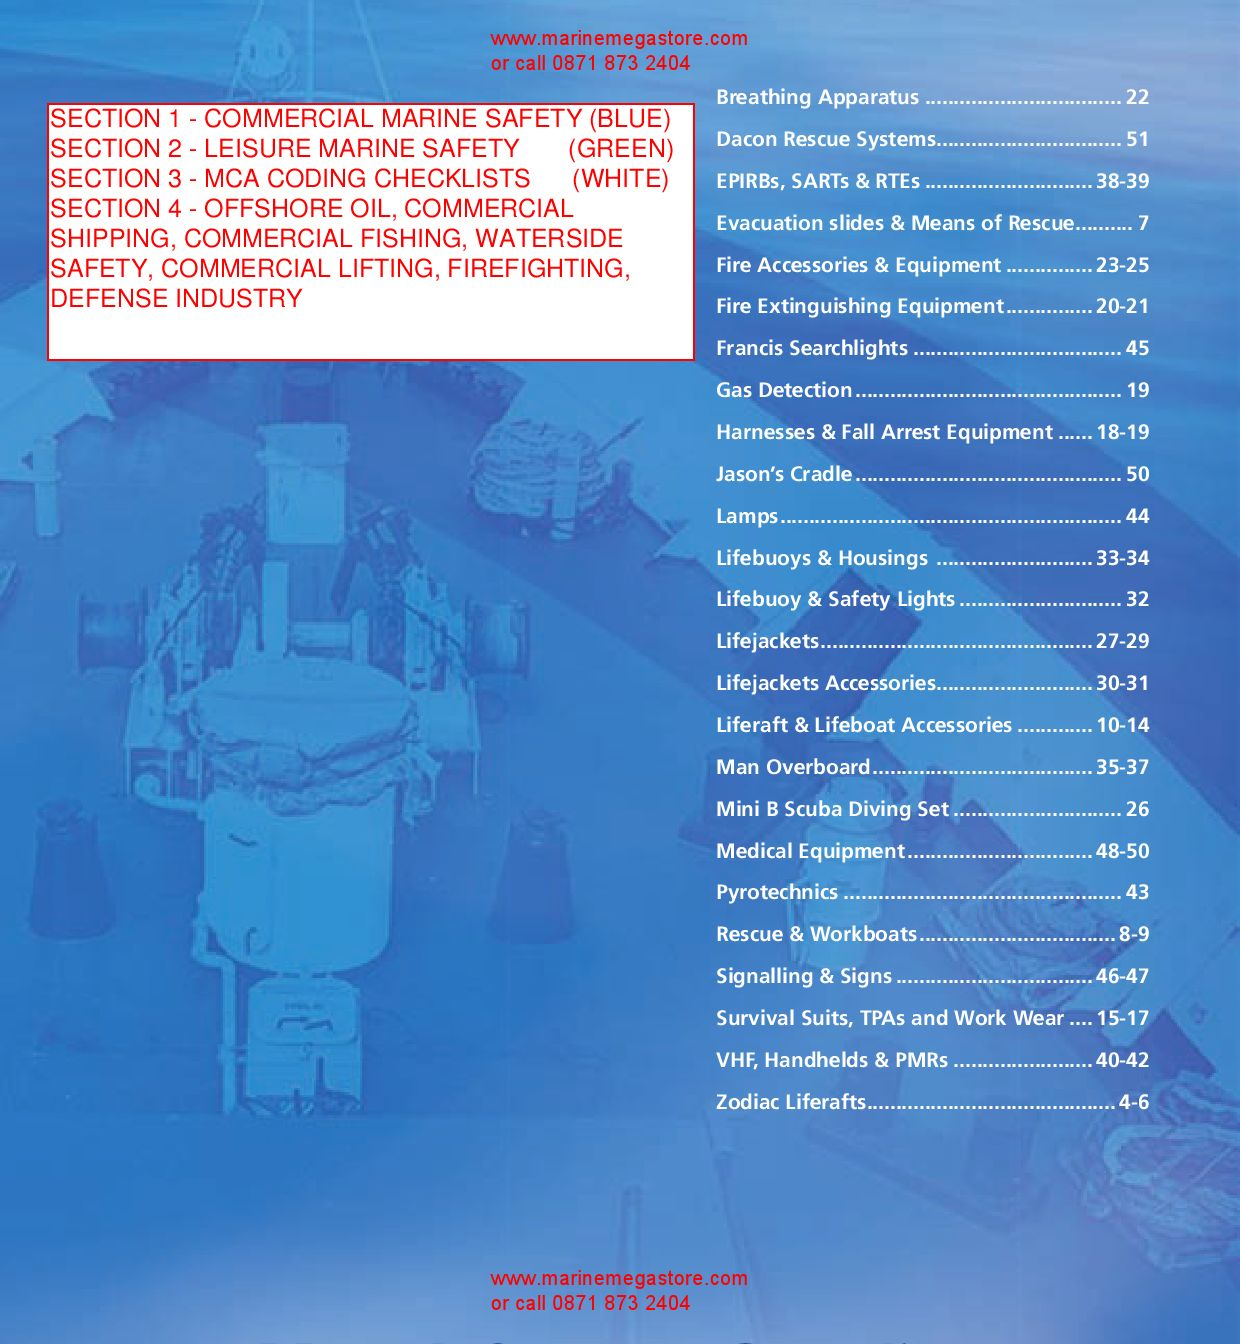 Complete Marine Safety Catalogue By Mega Store Ltd Issuu Power Window Switch Or Relay Help Pelican Parts Technical Bbs